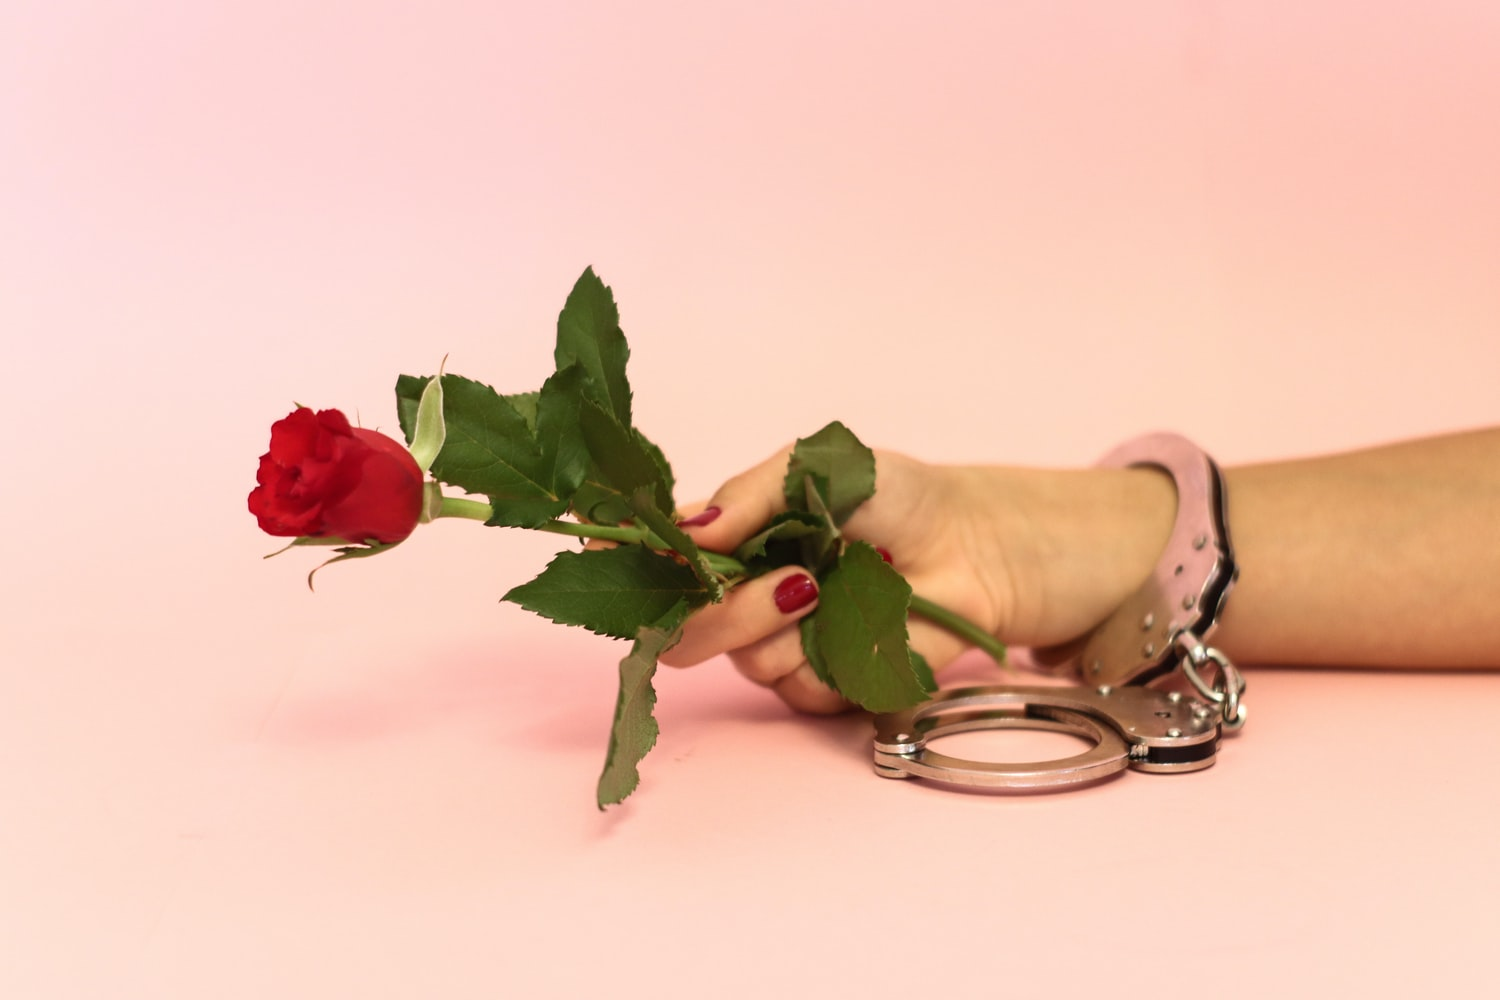 Woman's wrist in handcuffs holding a rose